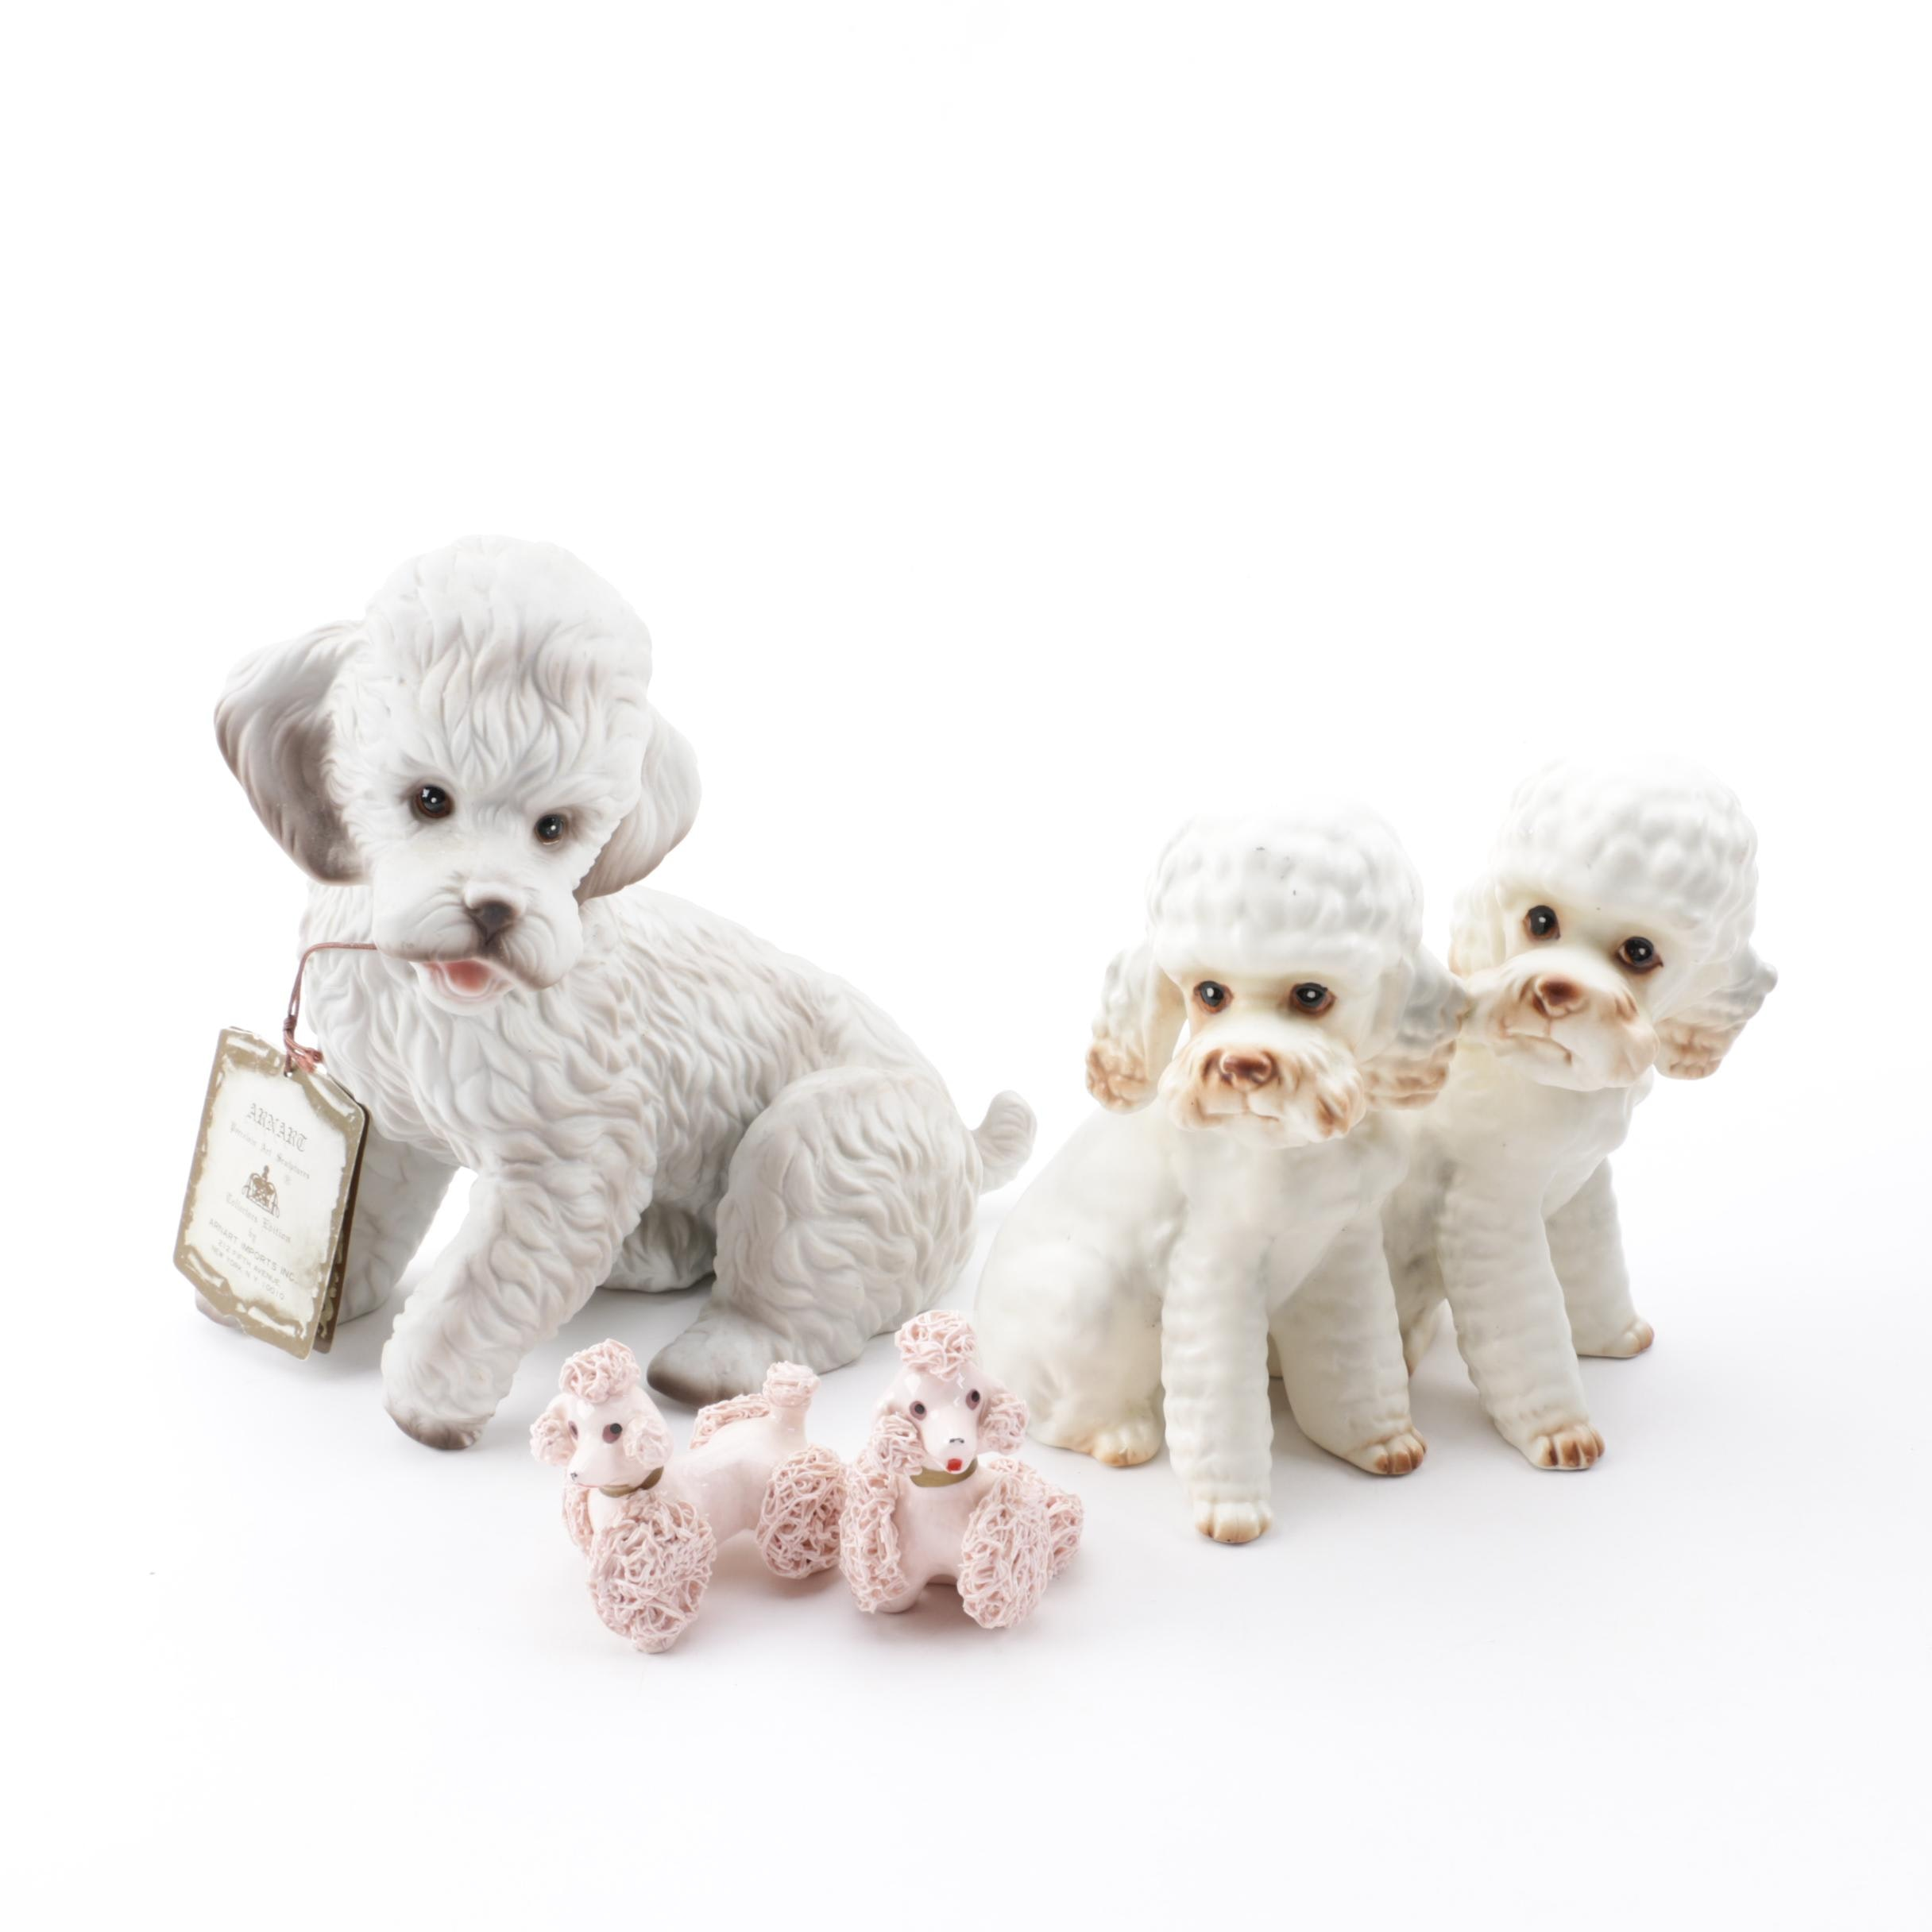 Ceramic and Porcelain Poodle Figurines featuring Arnart